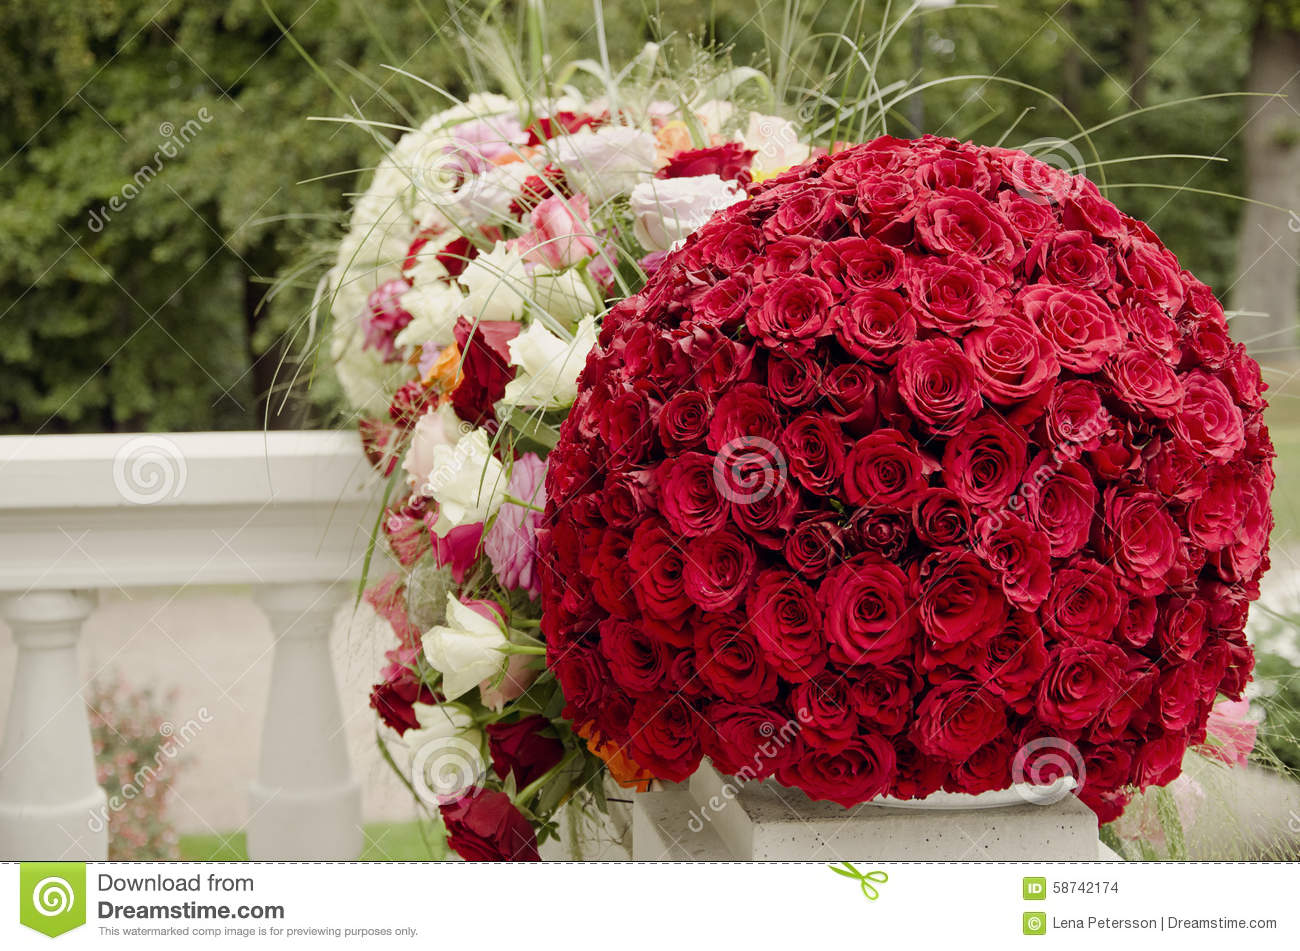 Red Roses Centerpiece Flower Ball Stock Photo Image Of Large